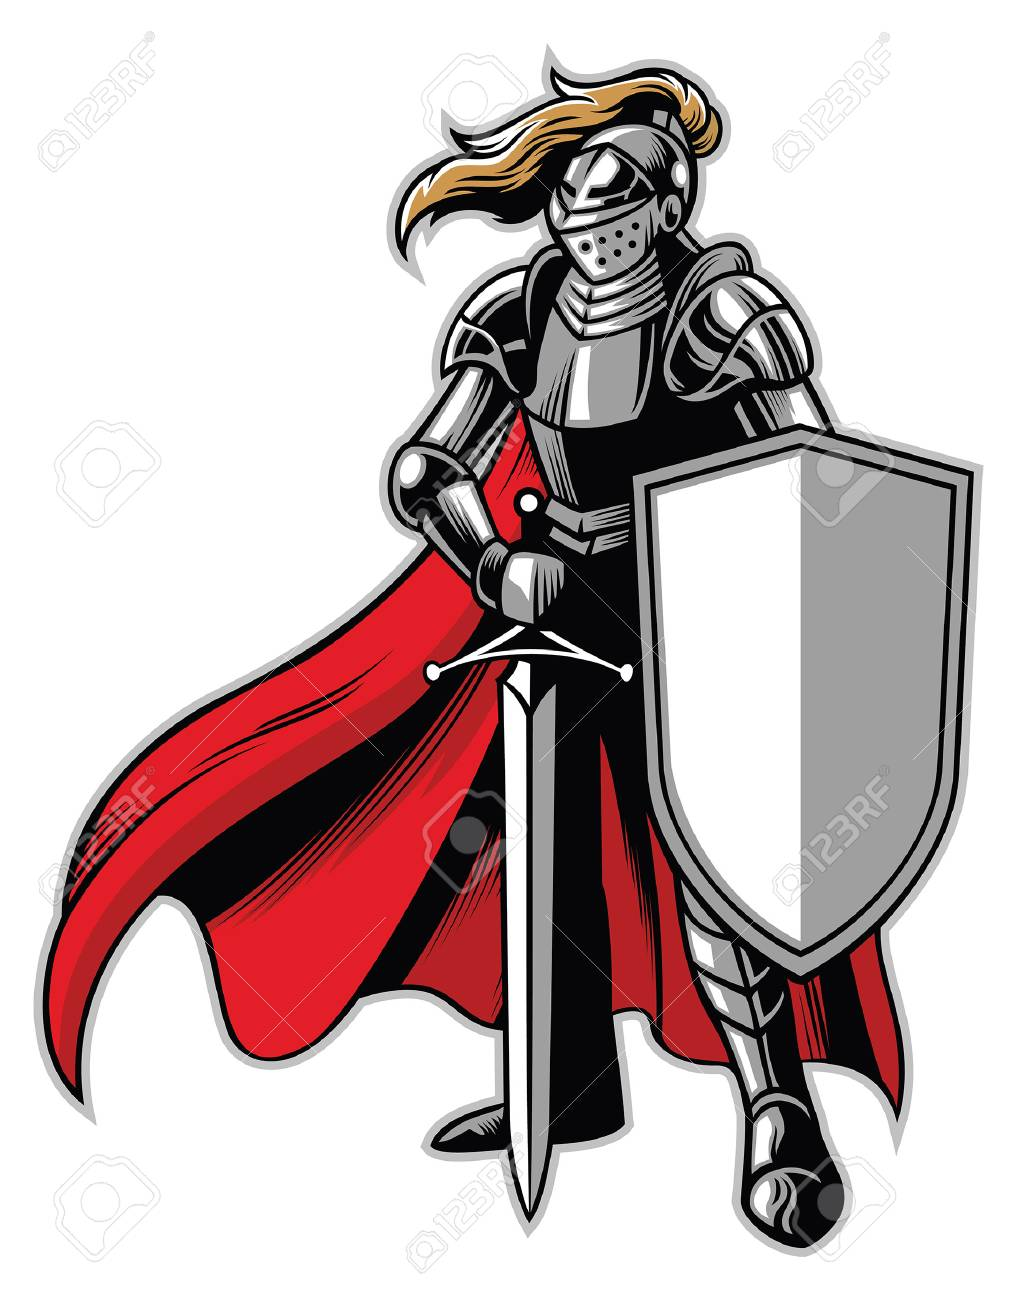 knight mascot standing with shield and sword - 122053174